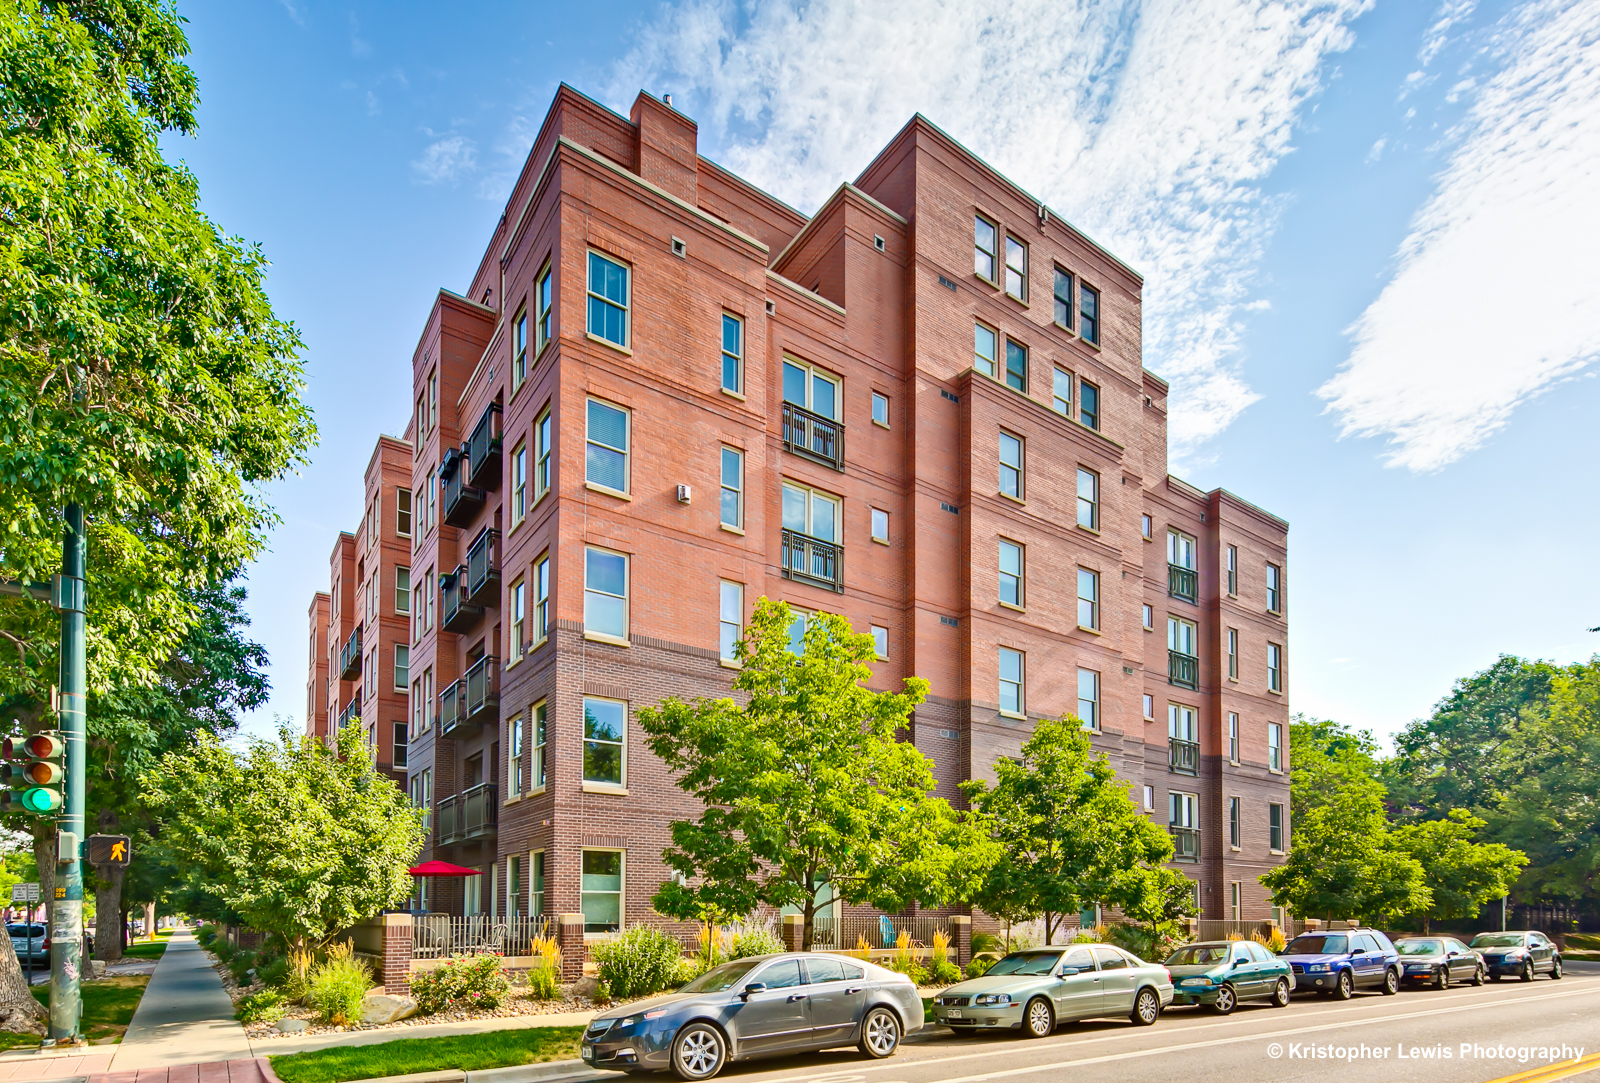 Swallow Hill Condo – Uptown